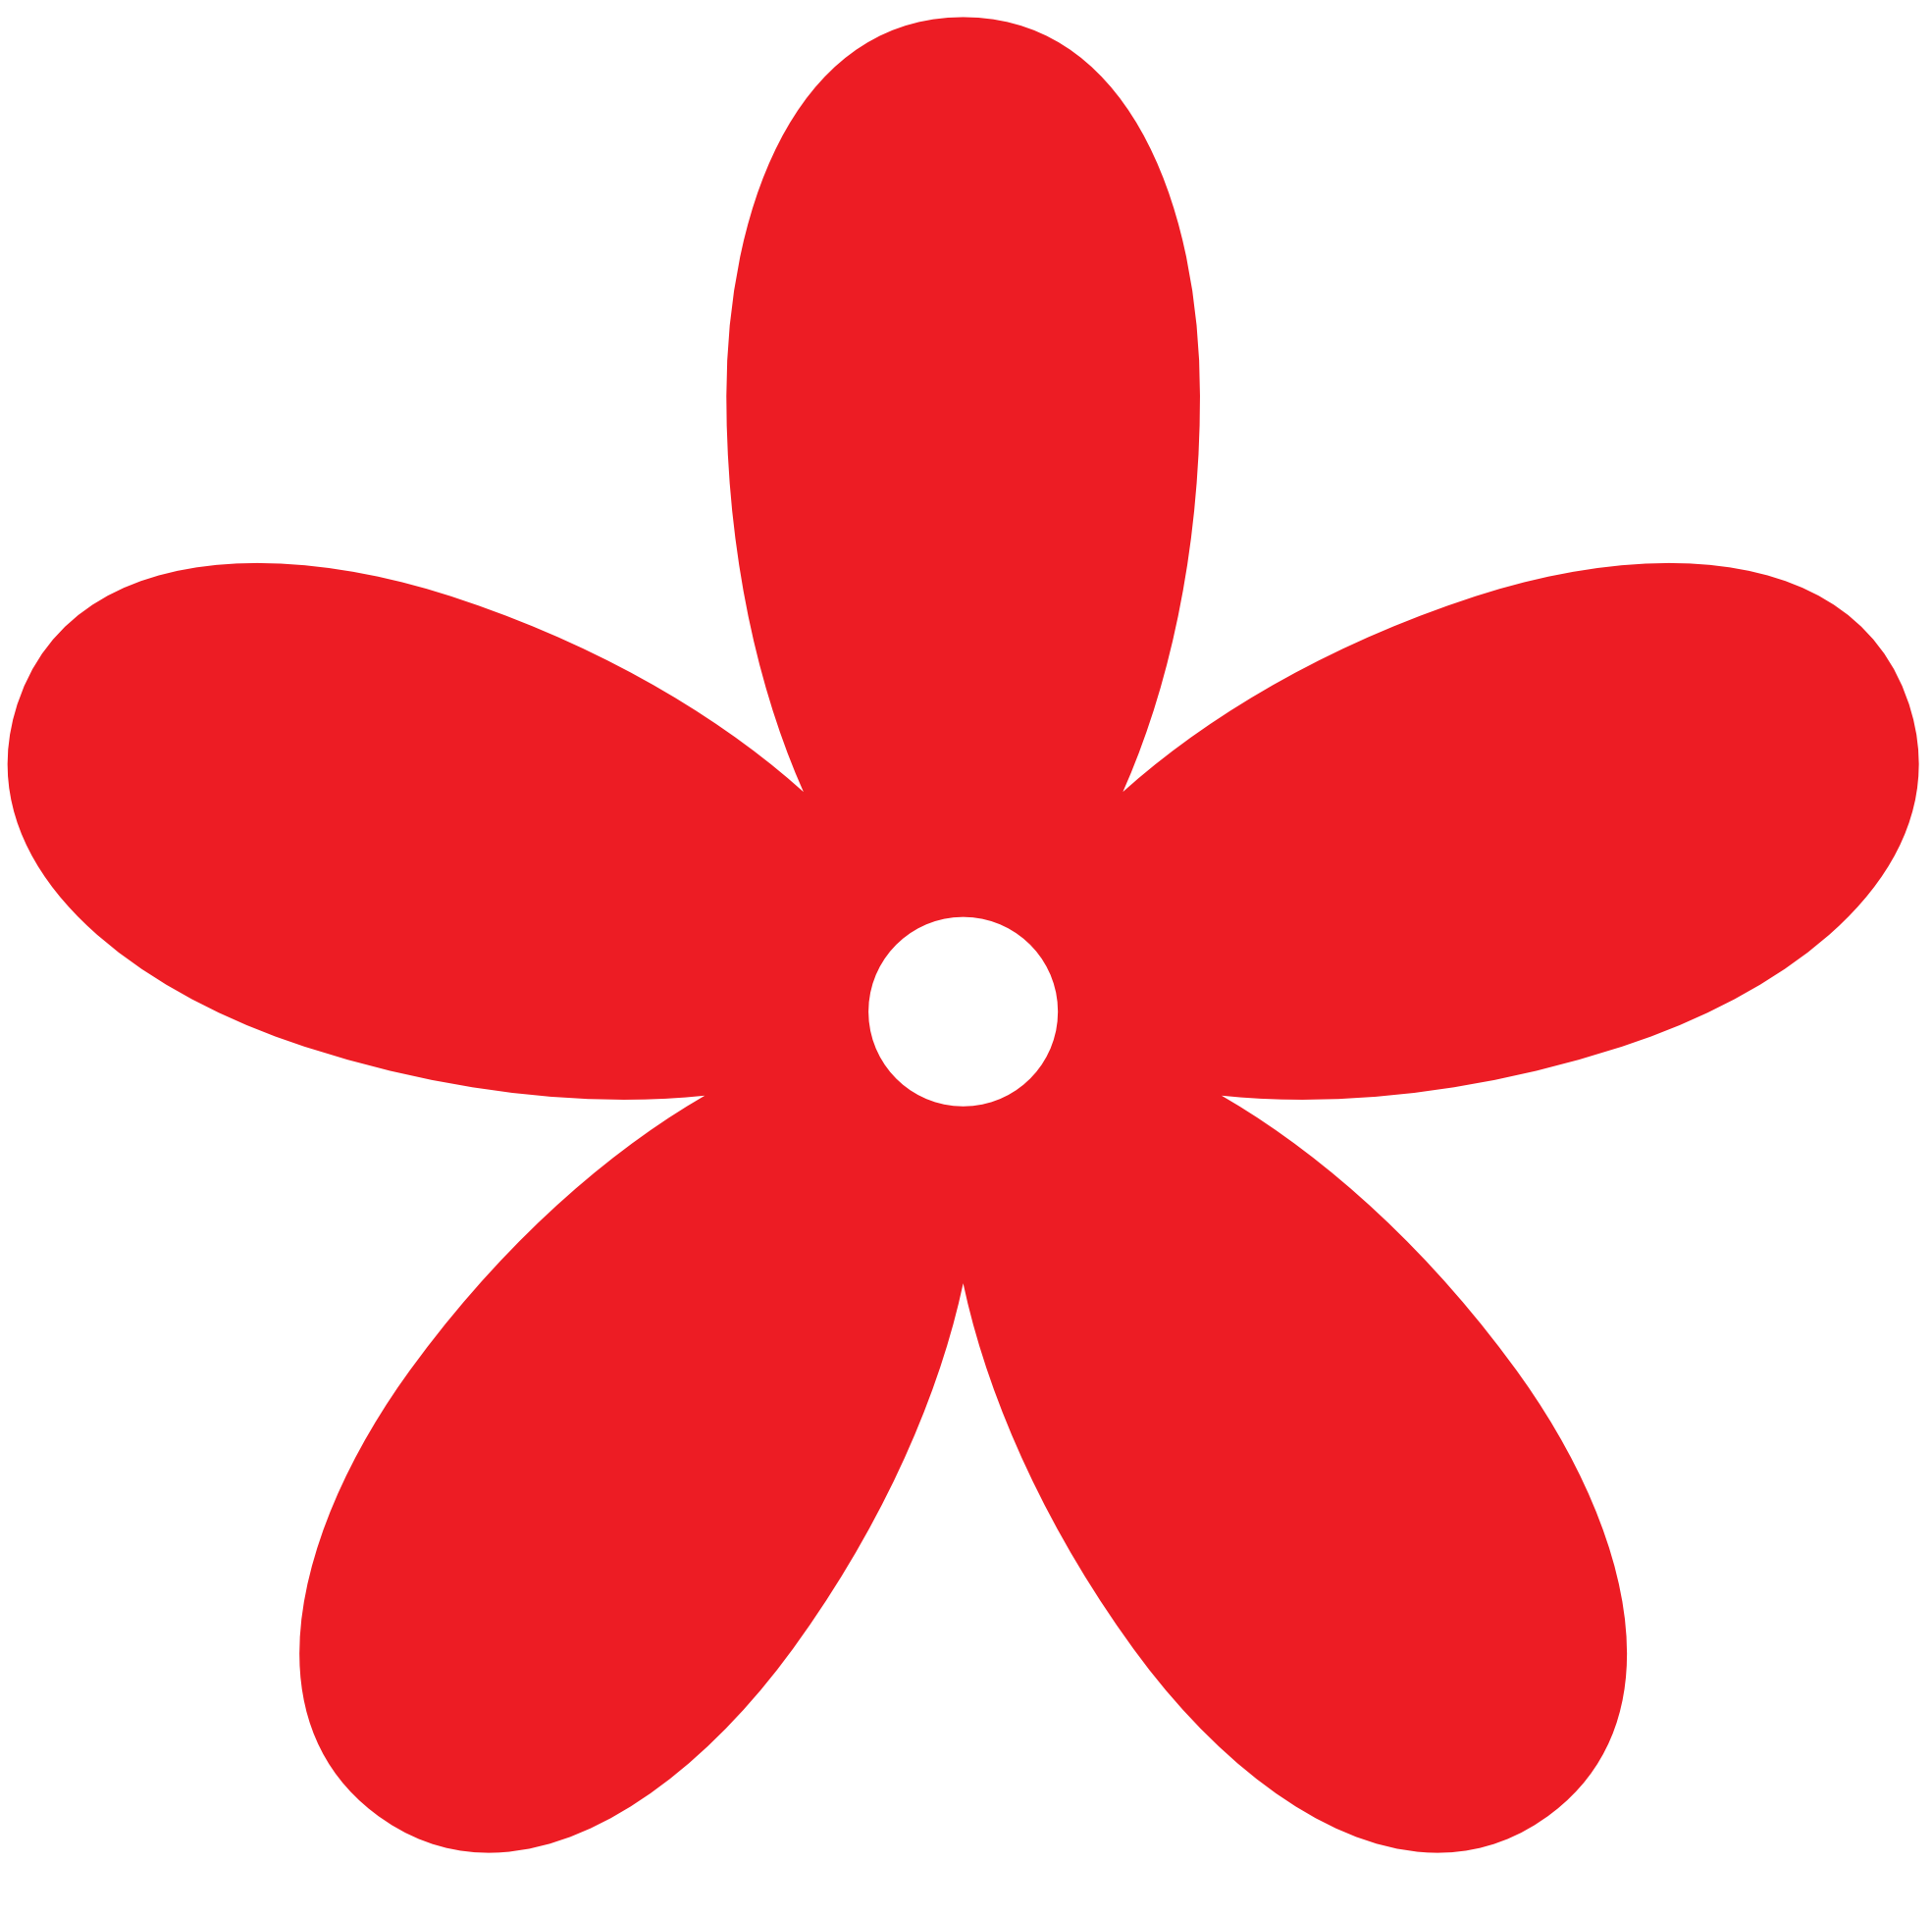 Red clipart Clip Clip Flower Art on